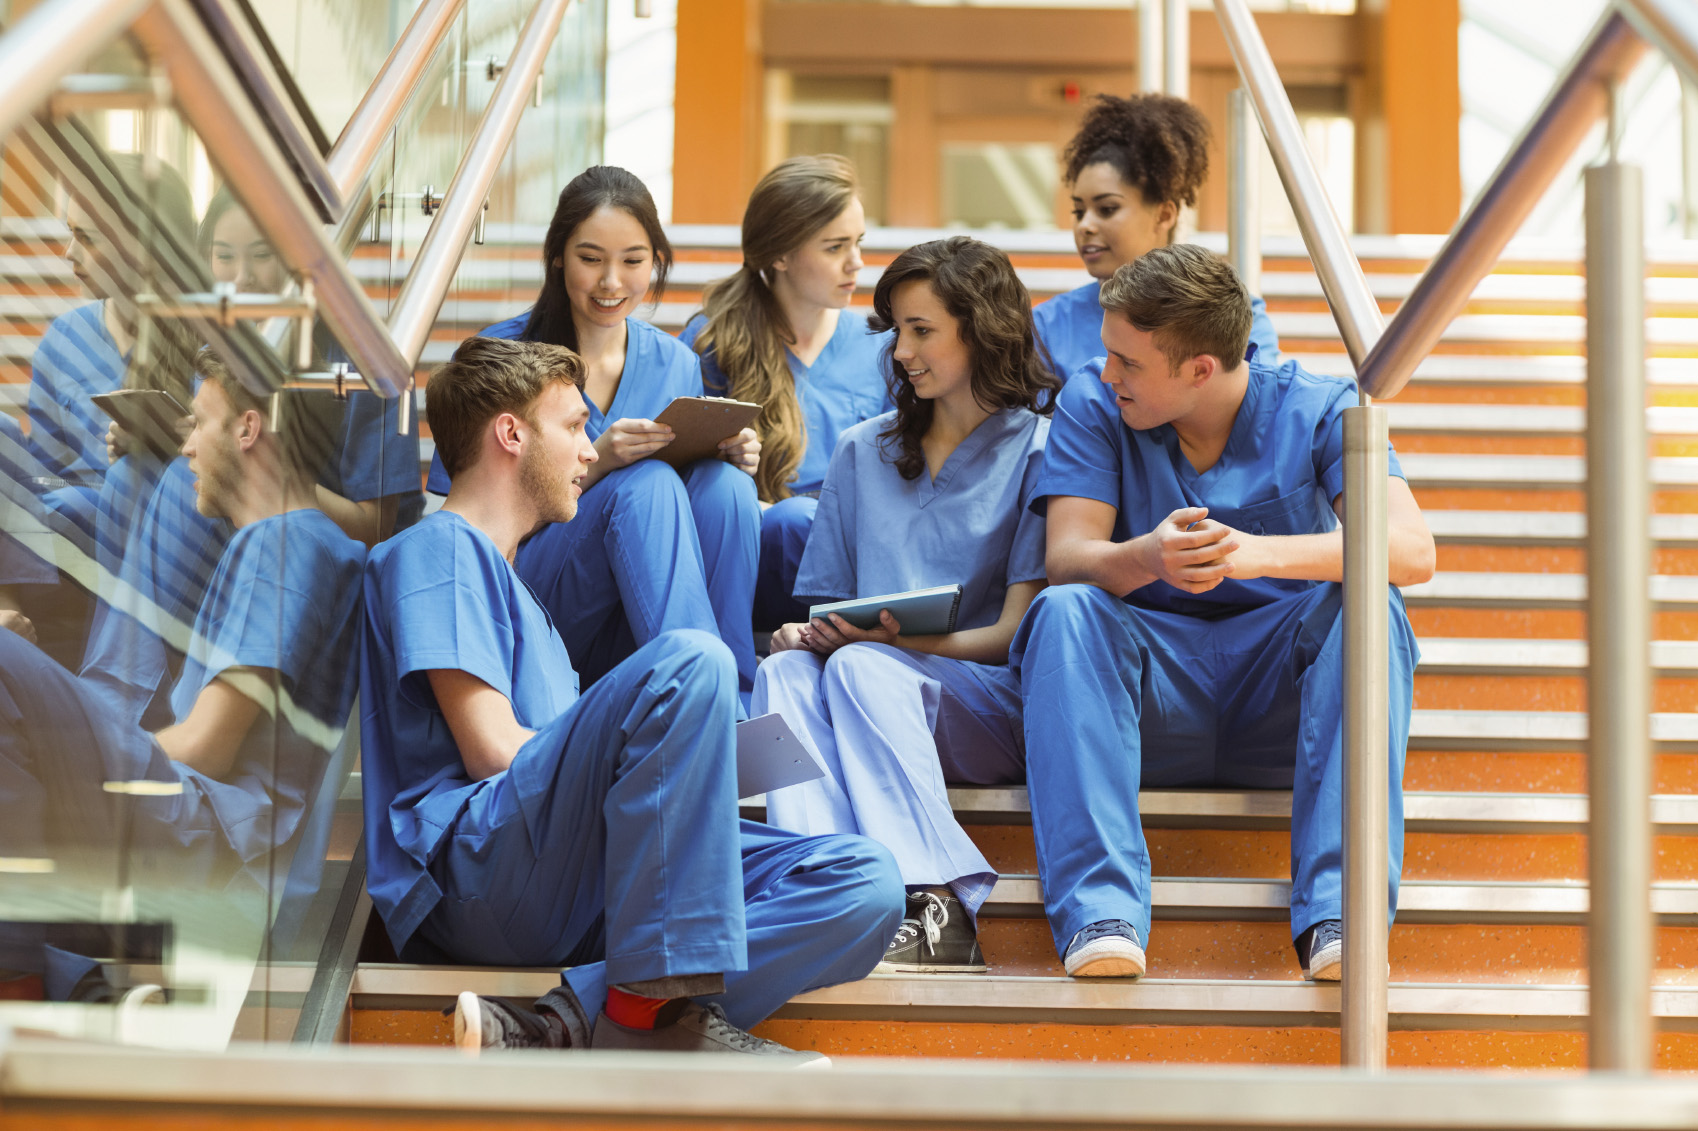 Education and Performance of Care Staffing Professionals